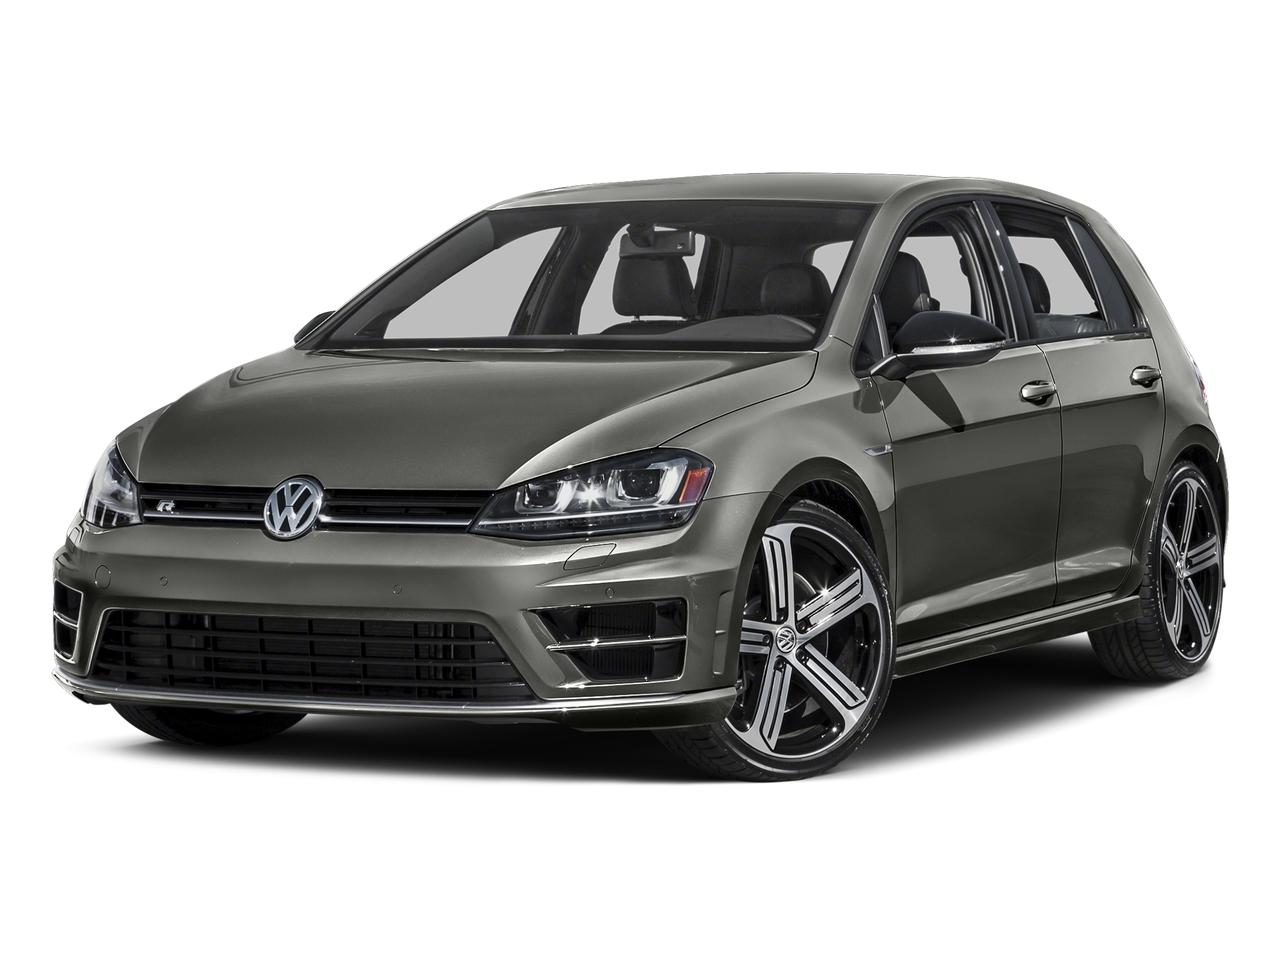 2015 Volkswagen Golf R Vehicle Photo in Pleasanton, CA 94588